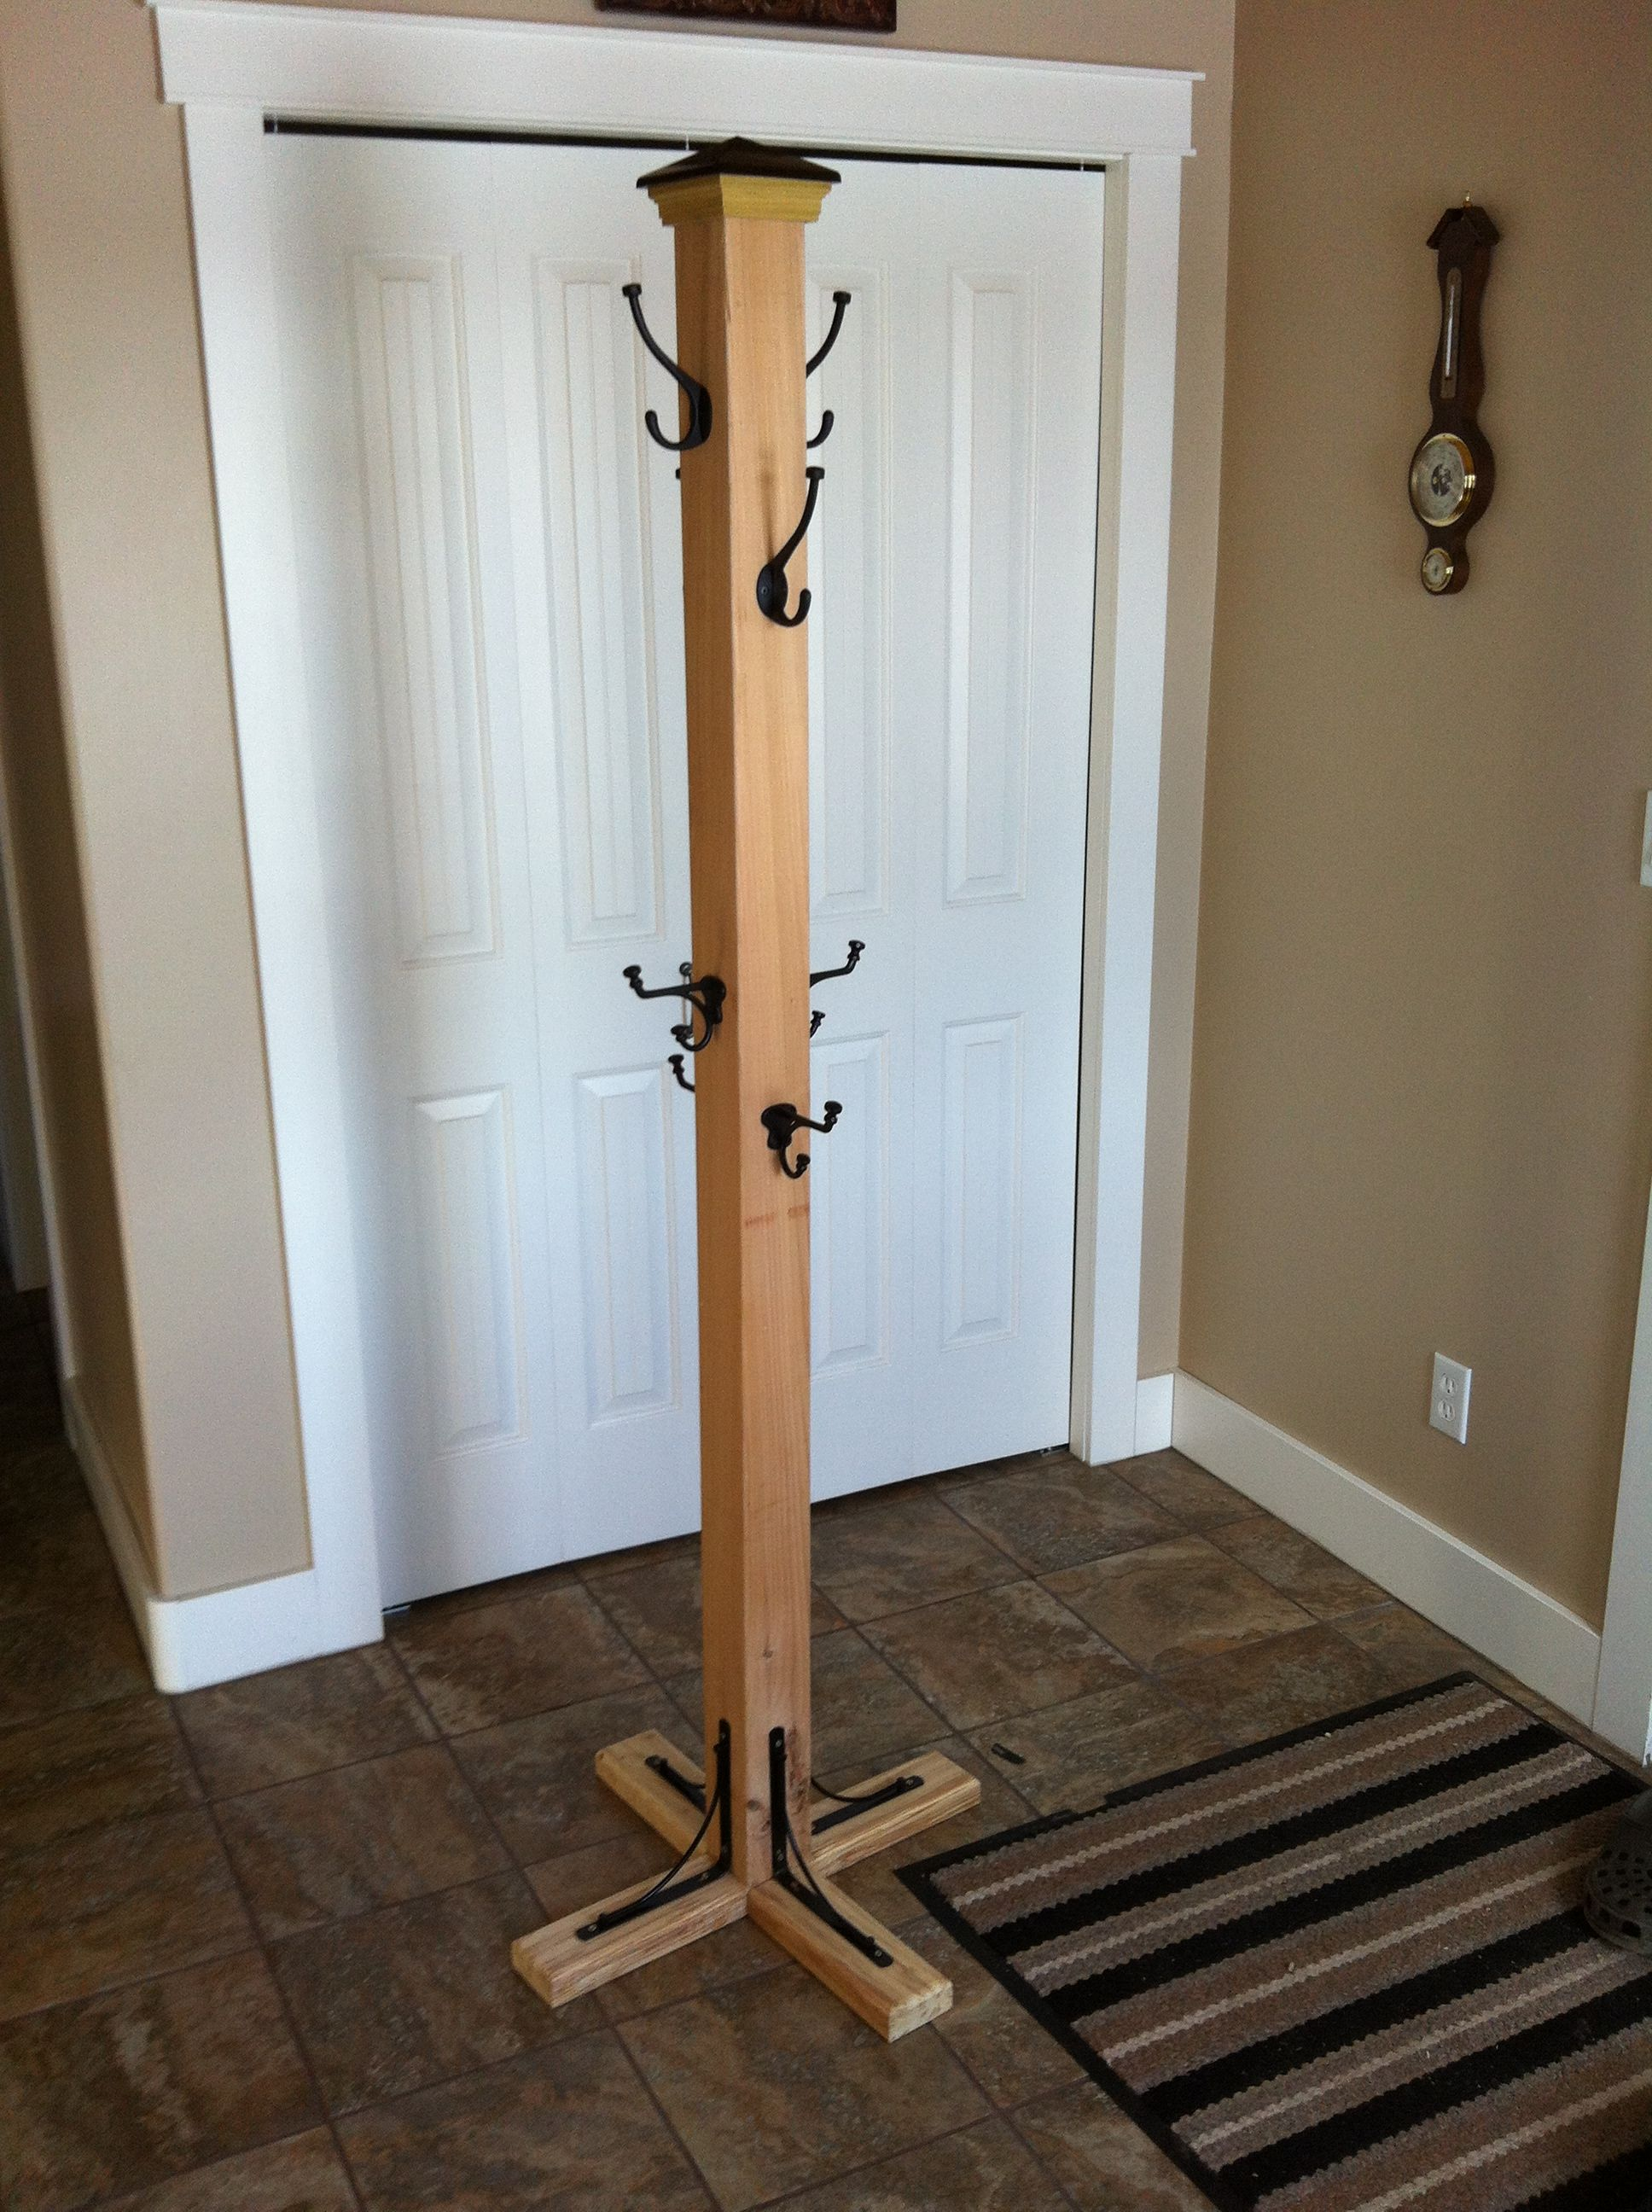 Pin By Alison Grant On Home Decor Rustic Coat Rack Diy Coat Rack Standing Coat Rack